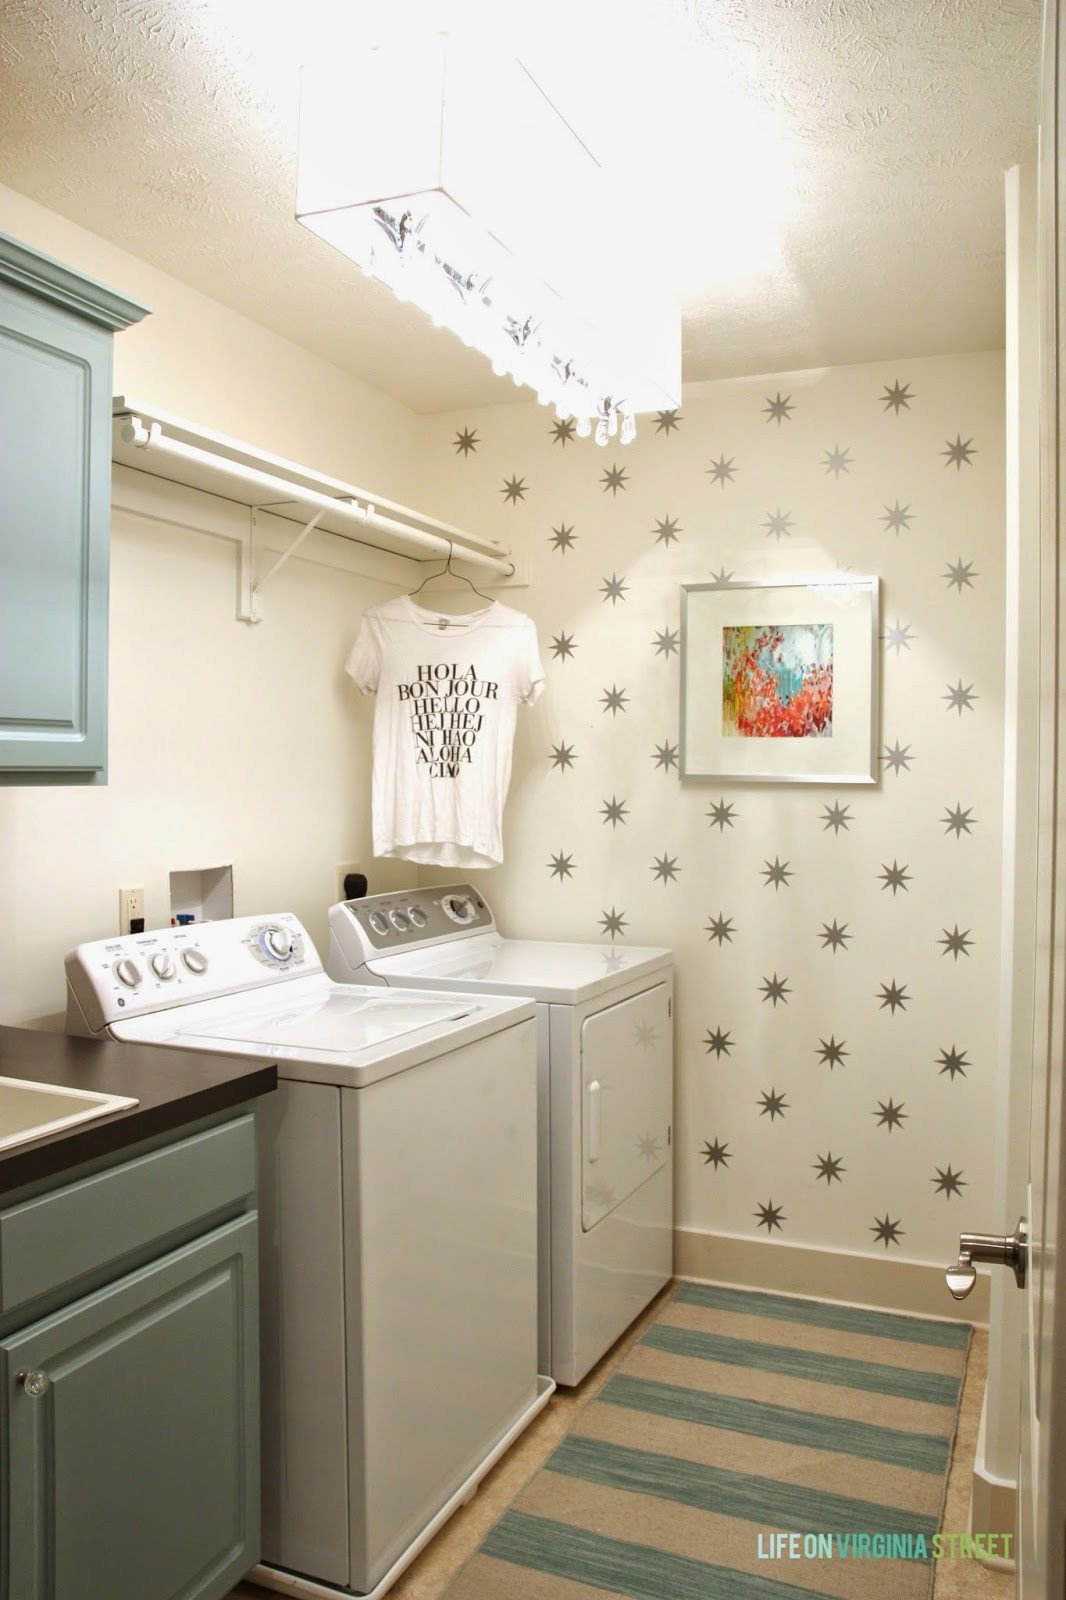 Best ideas about Laundry Room Makeover . Save or Pin 30 Laundry Room Makeover Ideas Now.